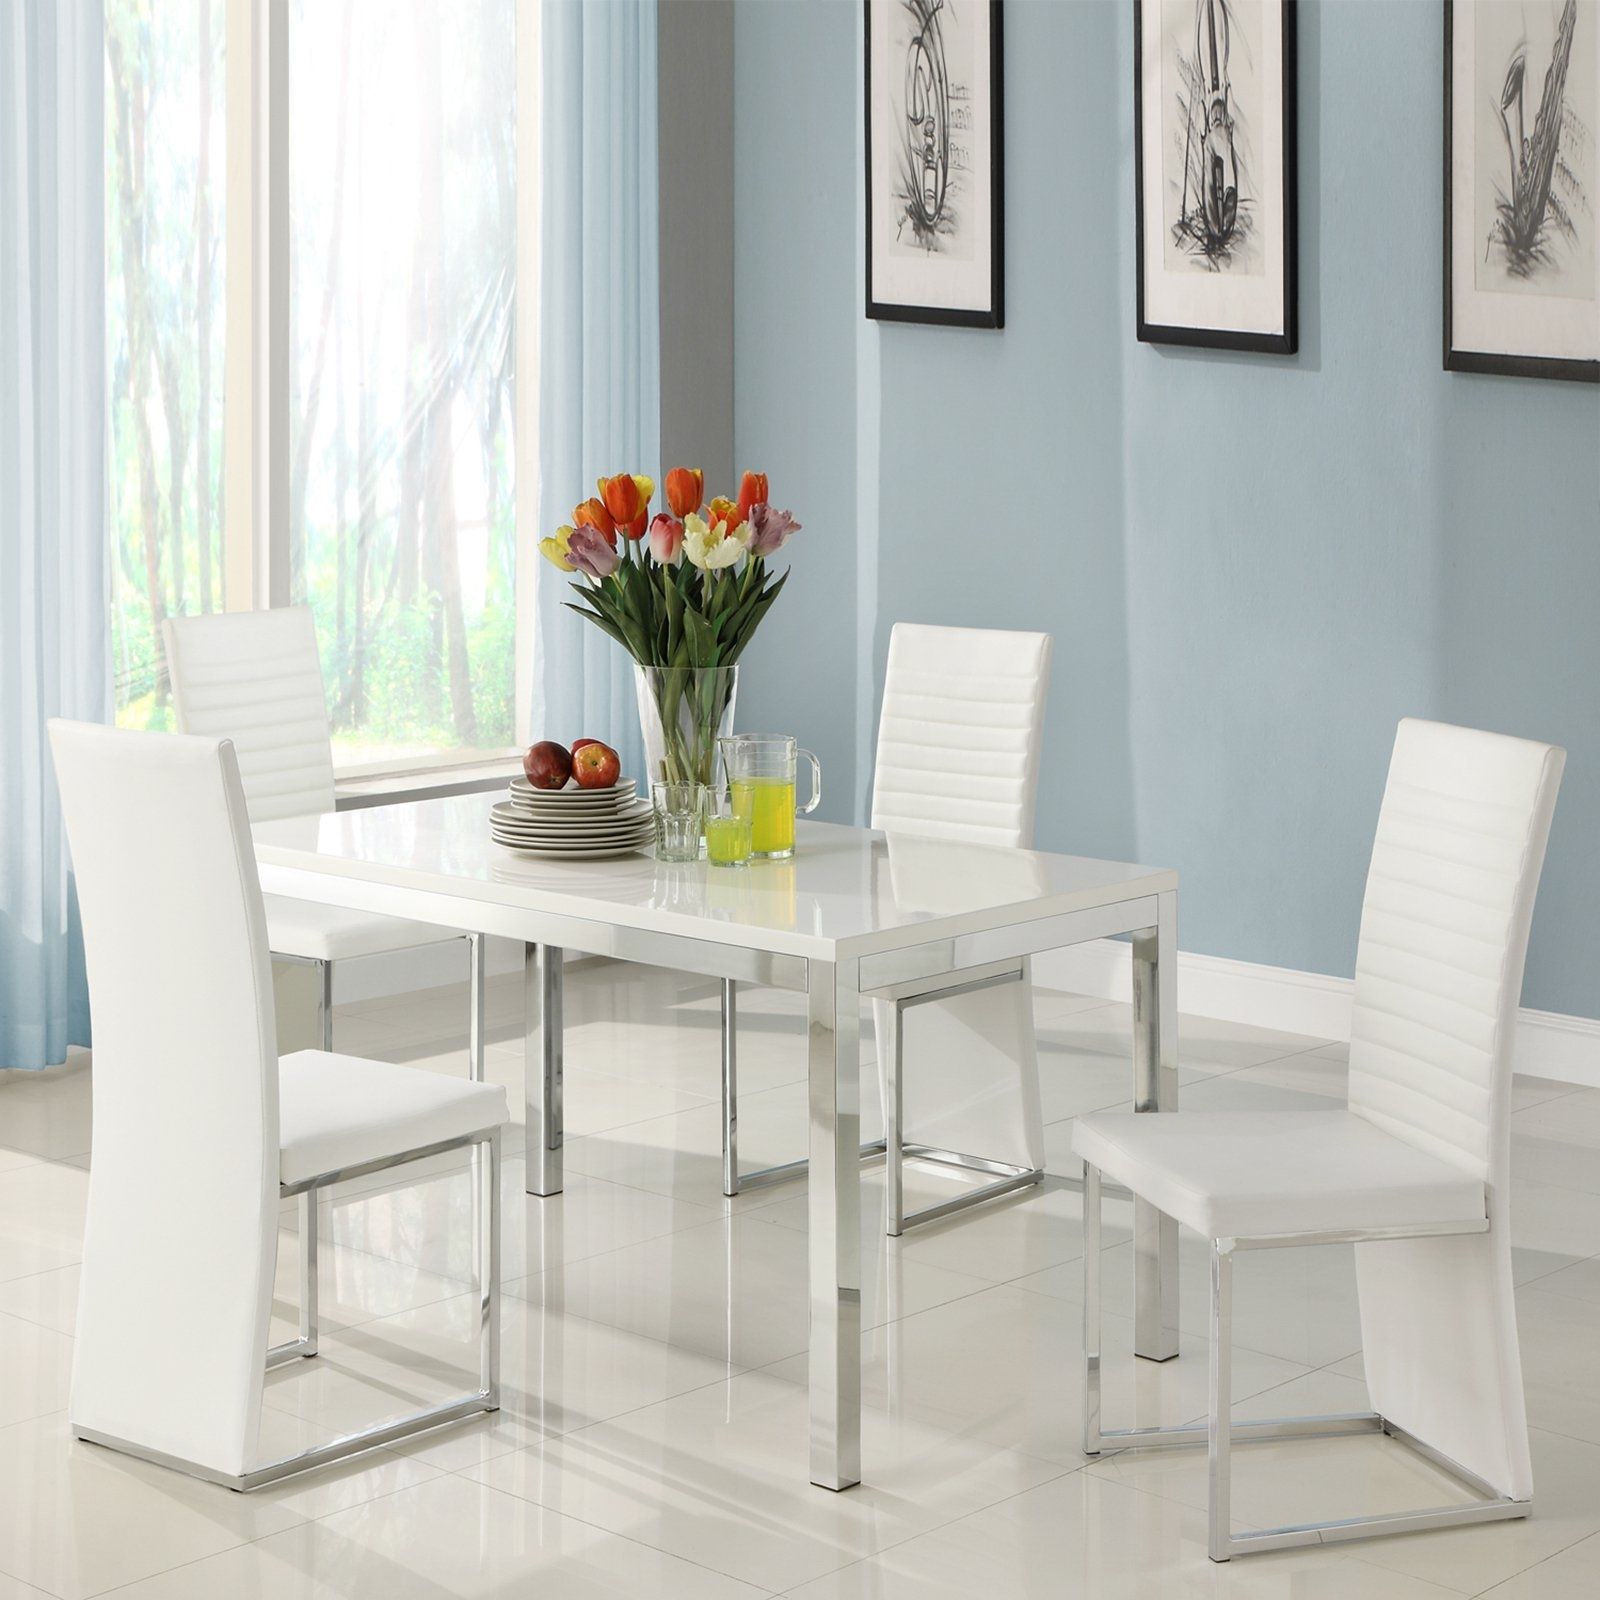 Homelegance Clarice 5 Piece Chrome Dining Table Set – Modern White For Well Liked Chrome Dining Tables (View 15 of 25)